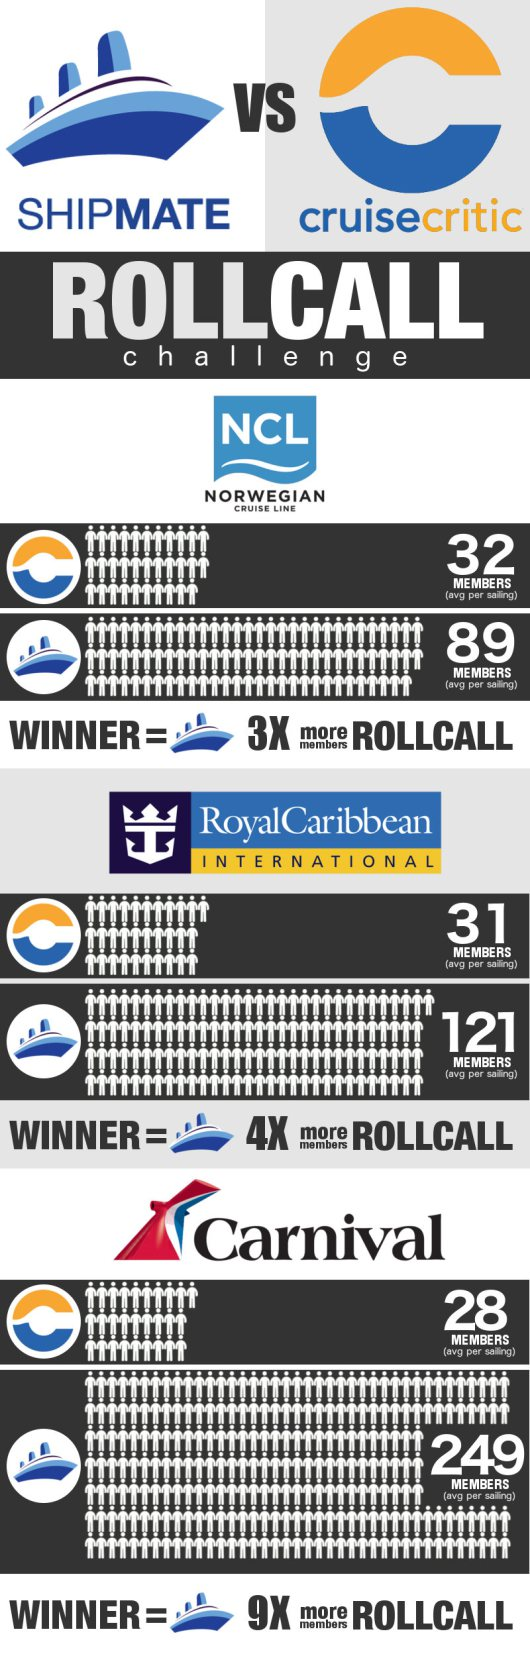 Cruise Roll Call Challenge - Ship Mate vs Cruise Critic. Who has the biggest cruise ship roll cals?!